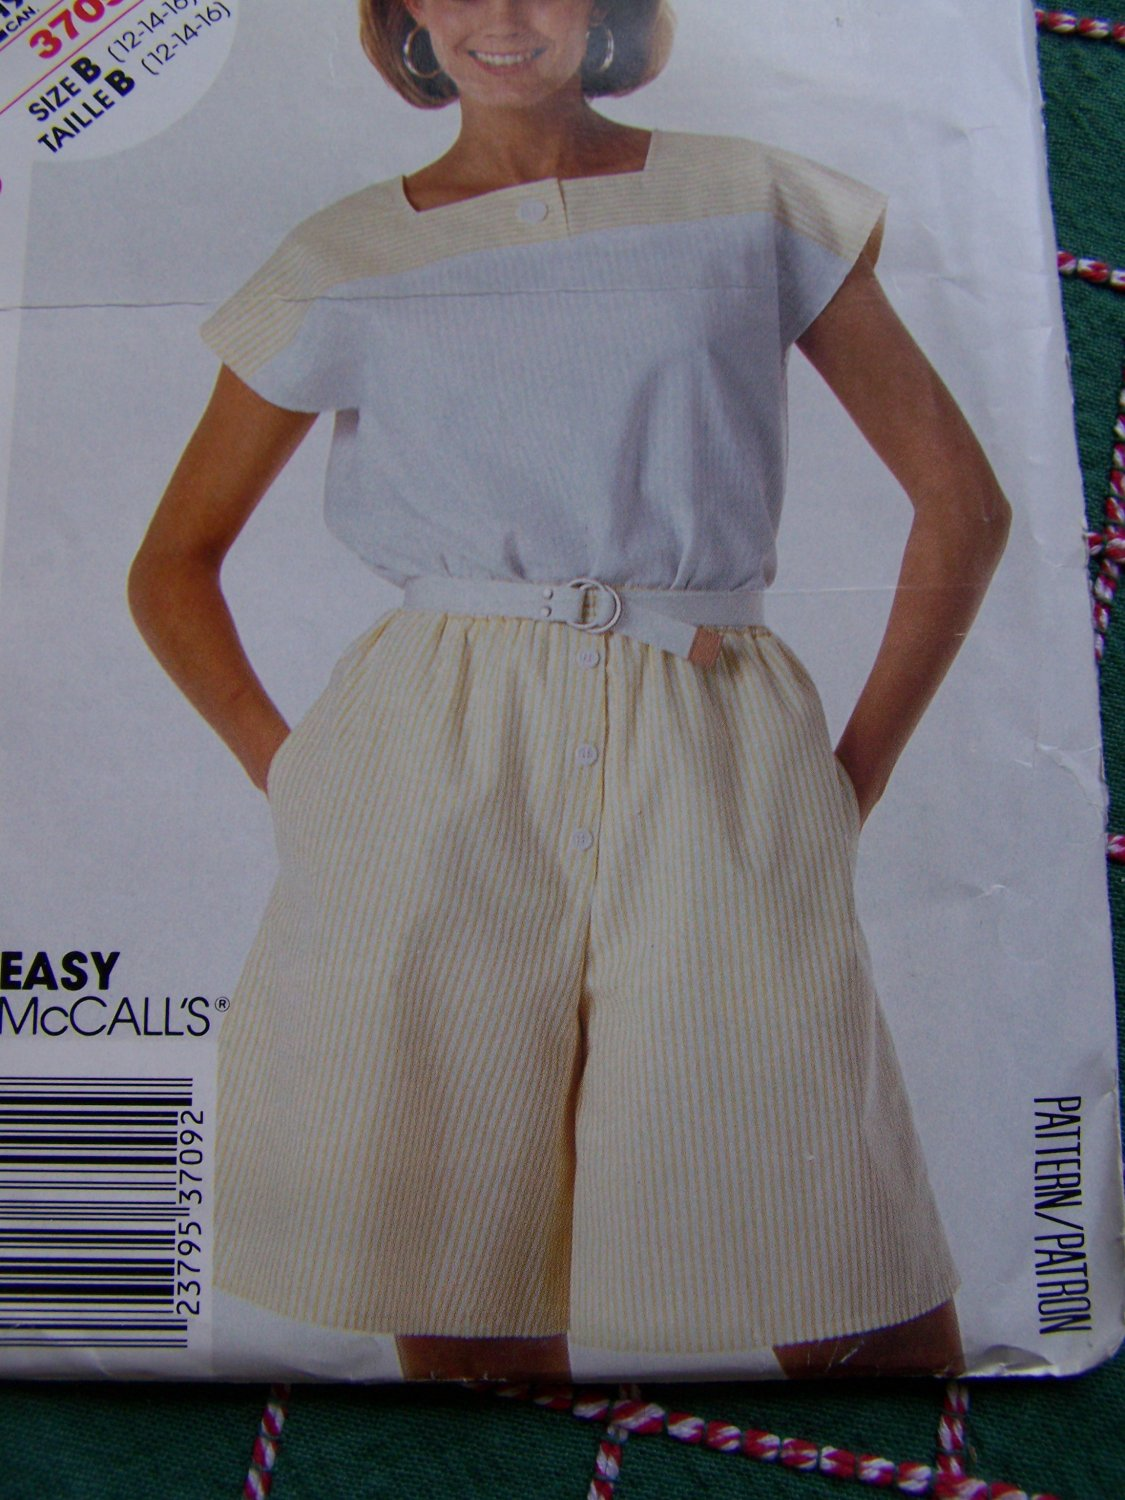 Uncut Stitch N Save McCalls Misses Top & Shorts Sewing Pattern 3709 Sz 12 14 16